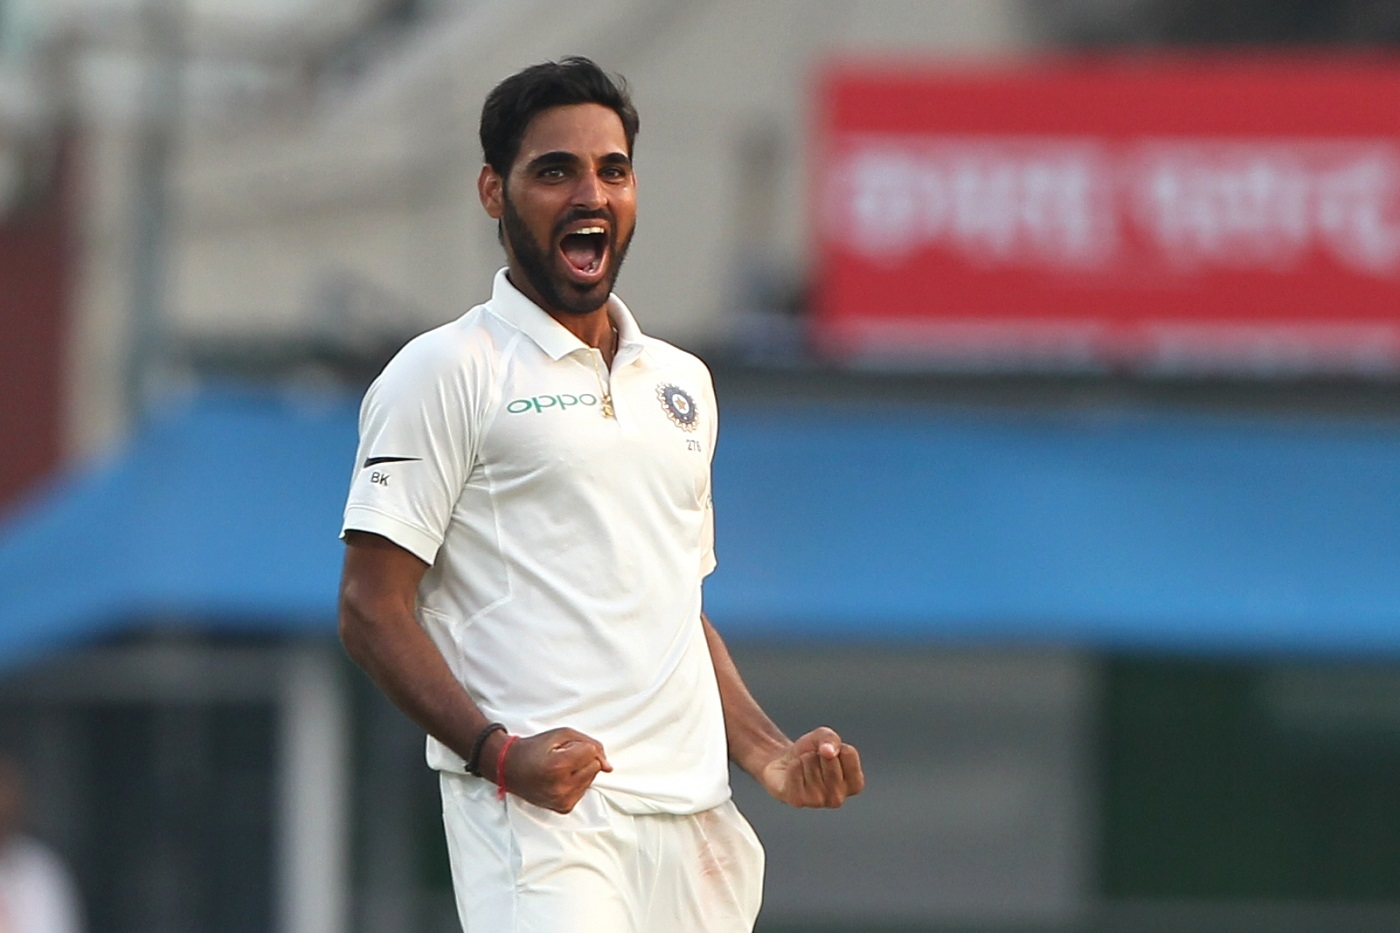 Bhuvneshwar Kumar picked 4 wickets for India